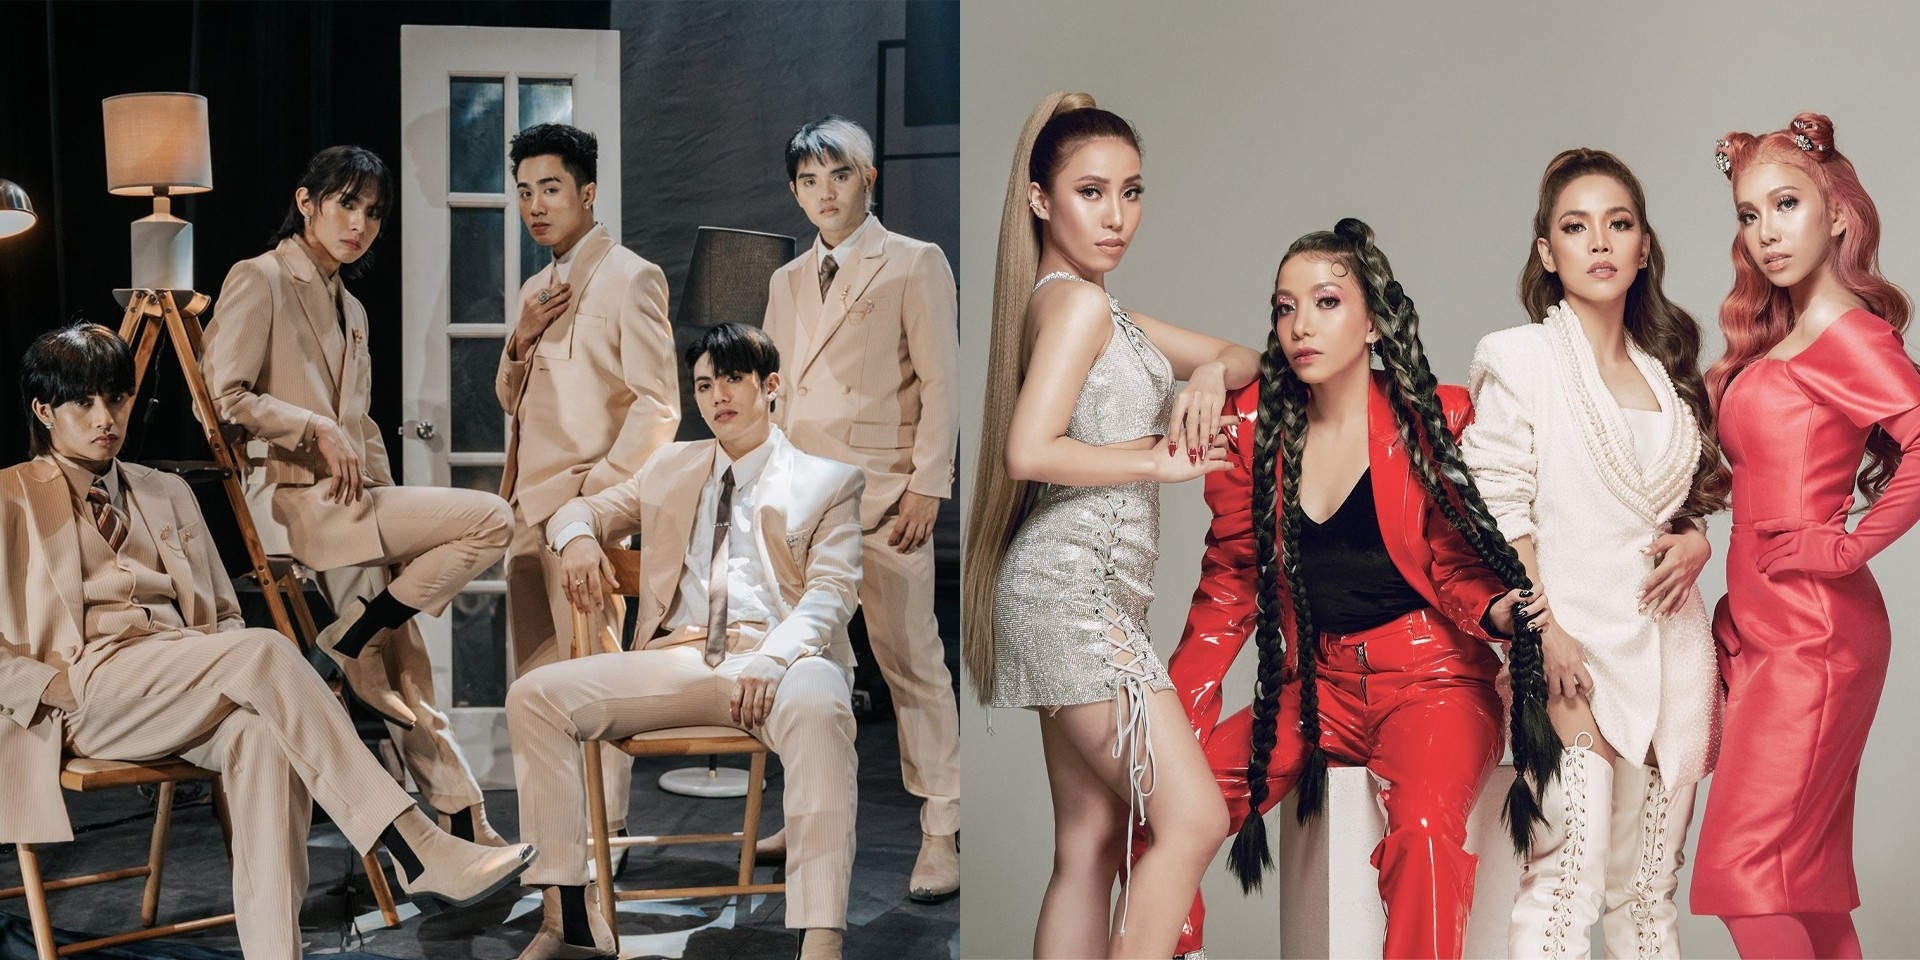 SB19 and 4th Impact to perform at FORTE: A Pop Orchestra Concert